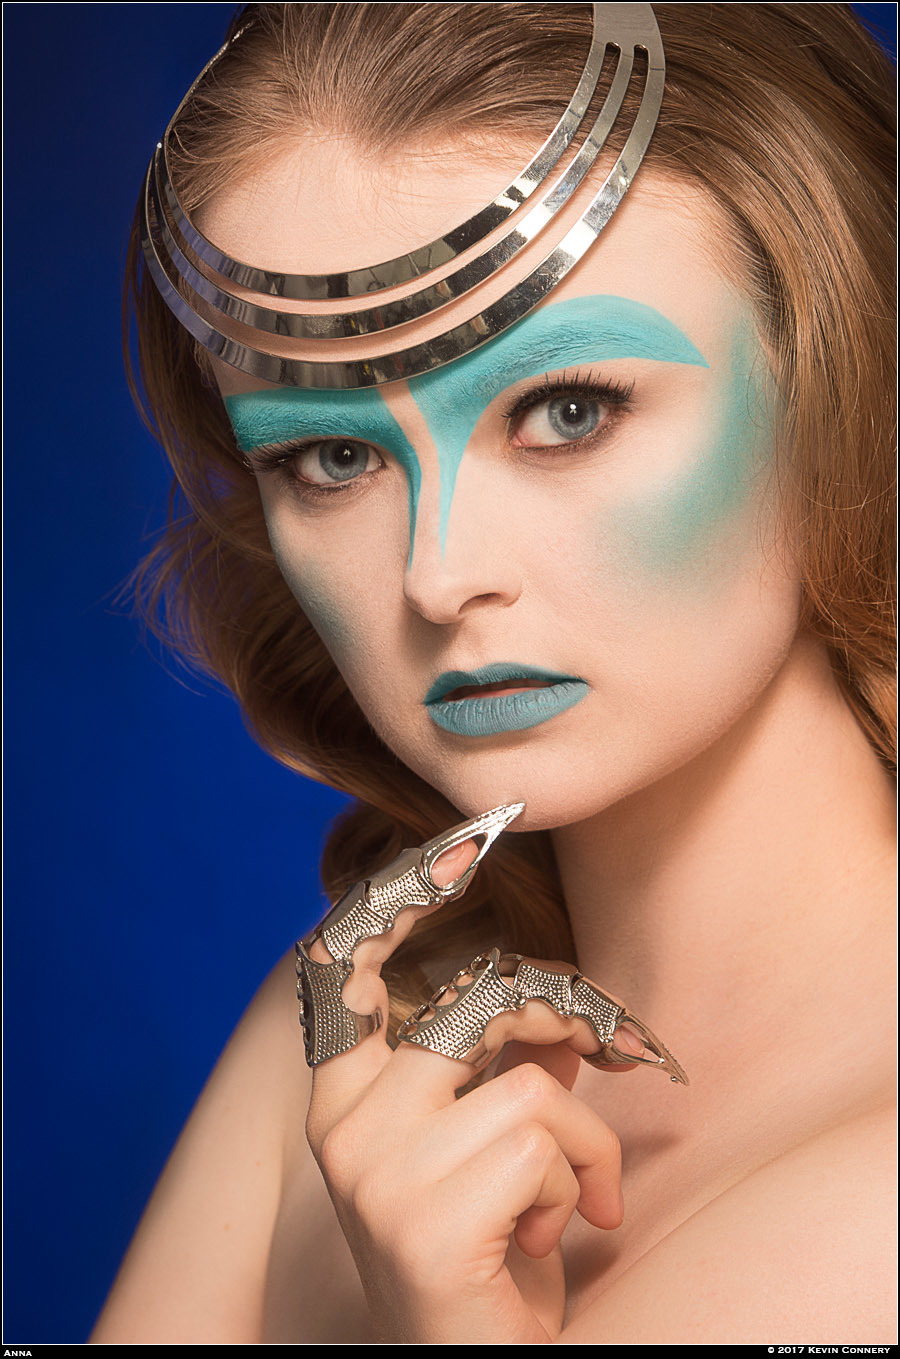 Blue Anna / Photography by Kevin Connery / Uploaded 16th January 2021 @ 10:25 PM